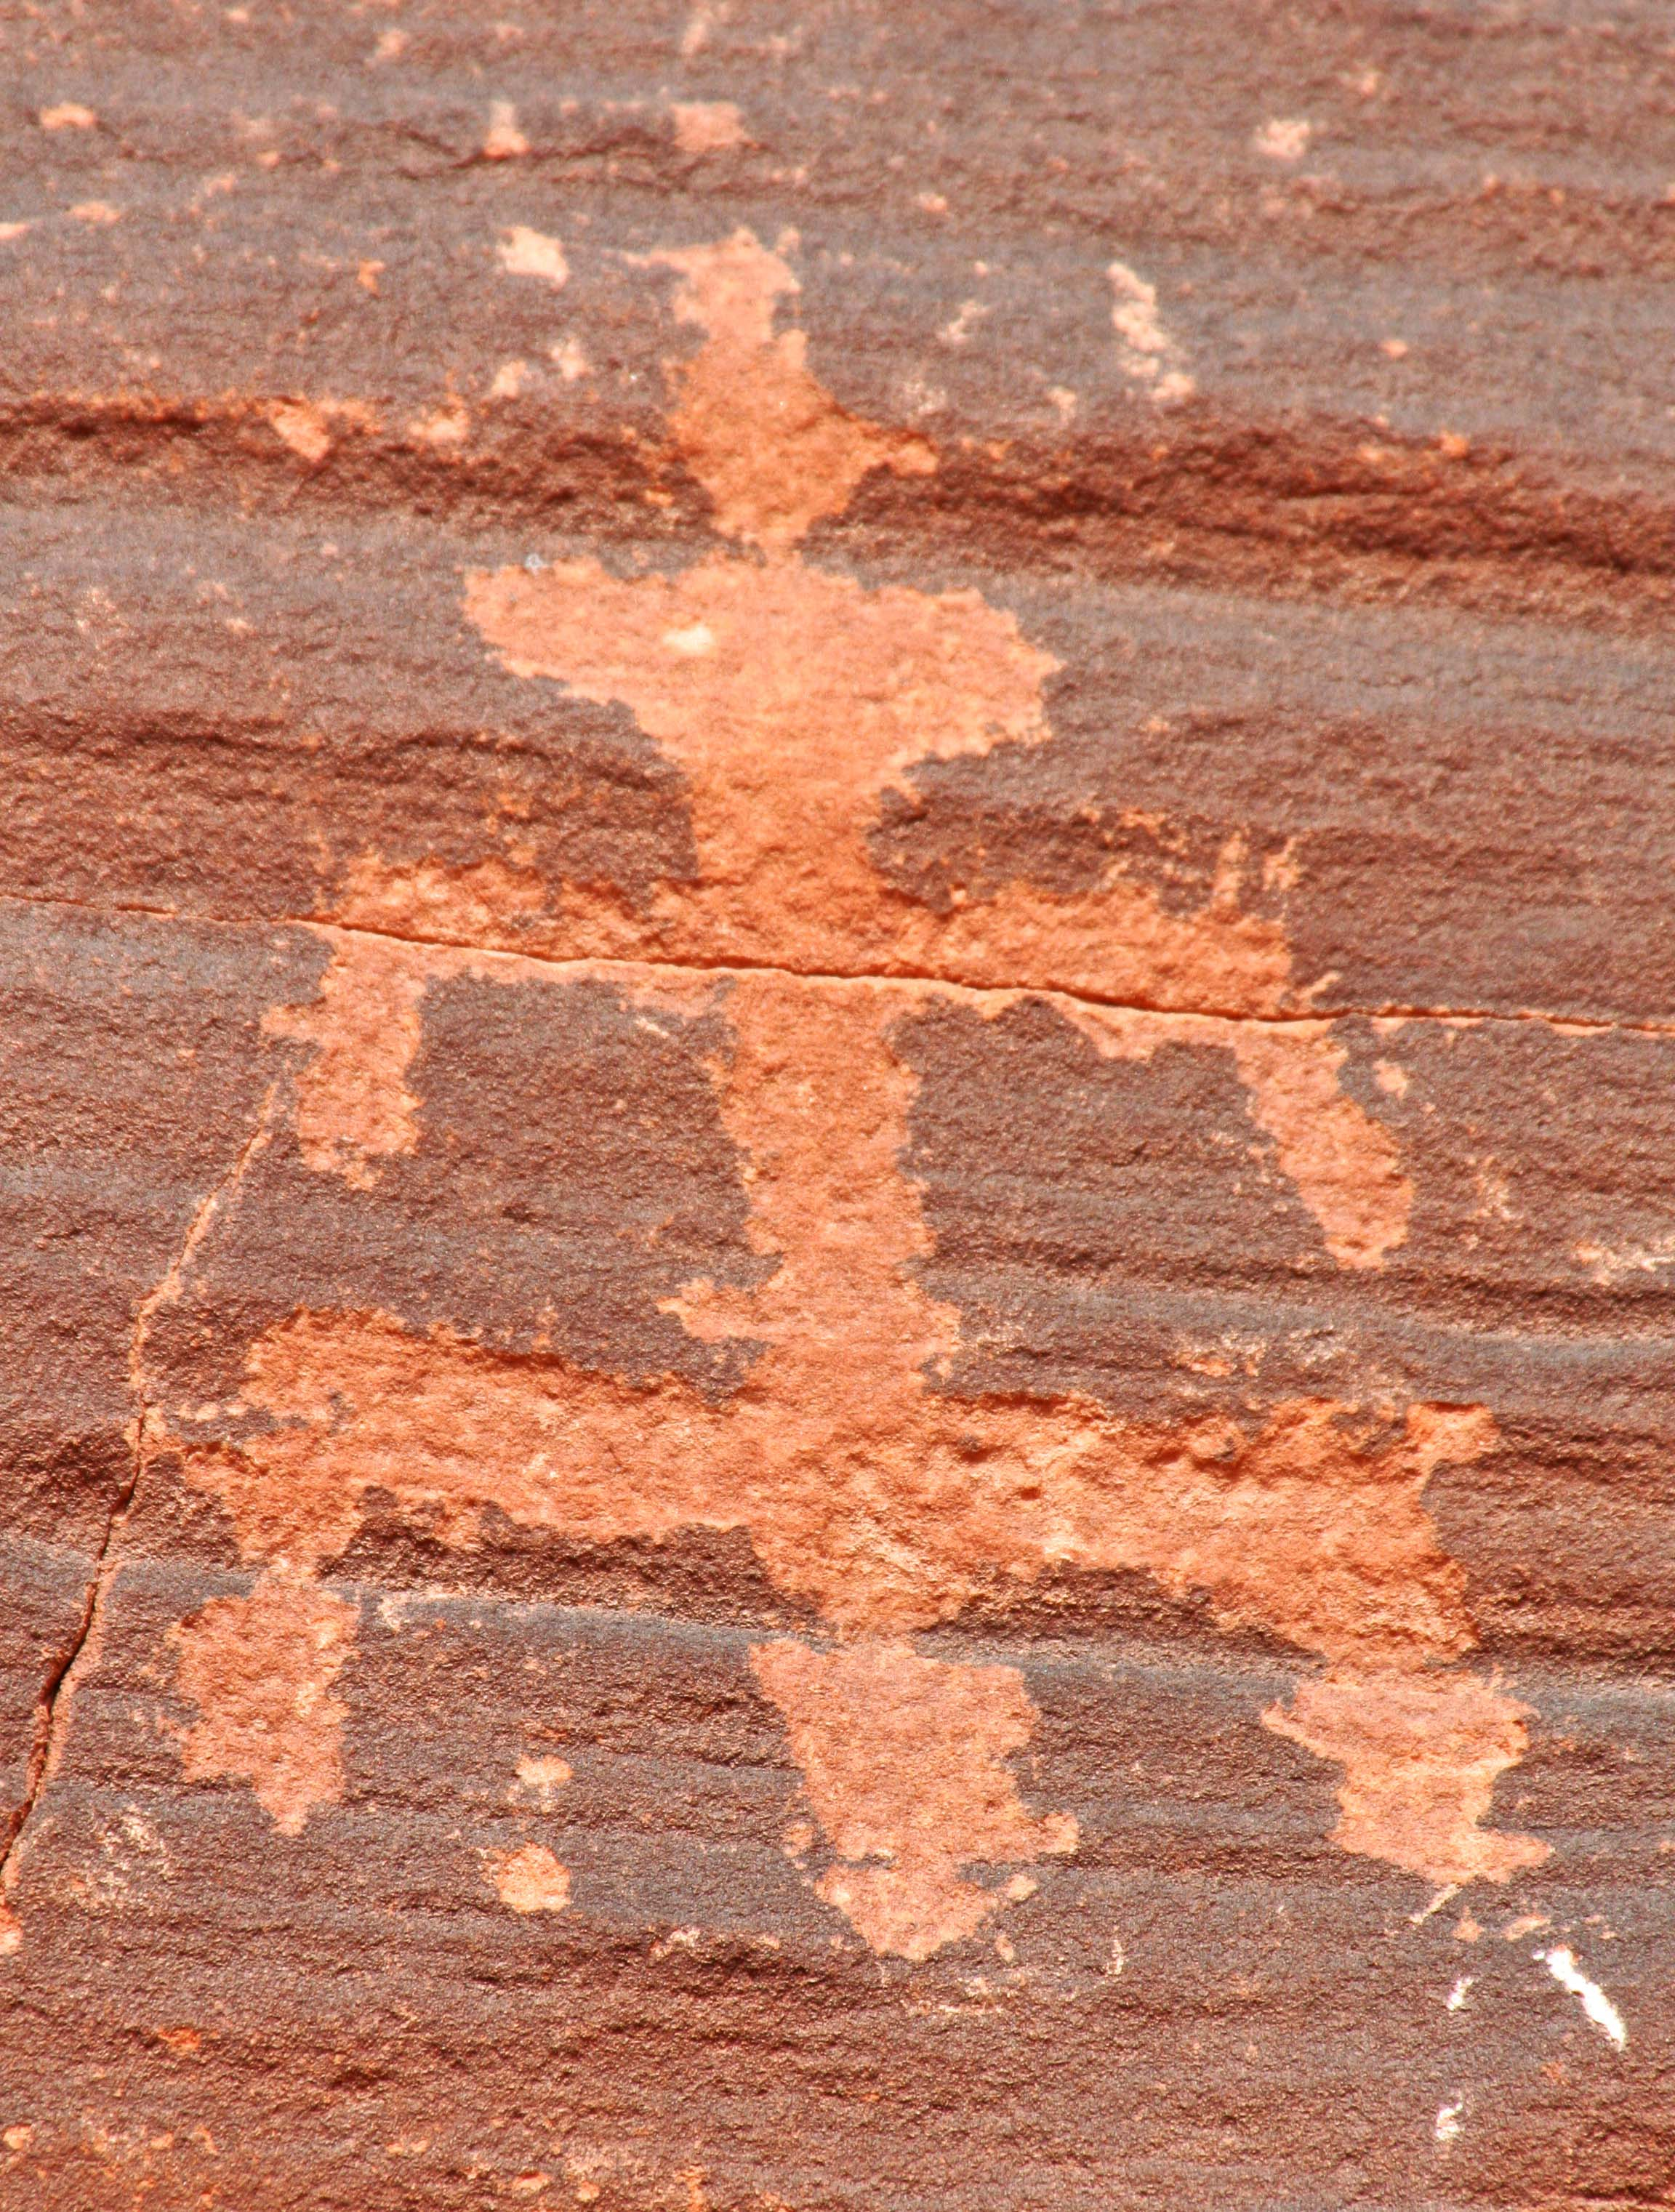 Petroglyph showing birth at Nevada's Valley Of Fire State Park.